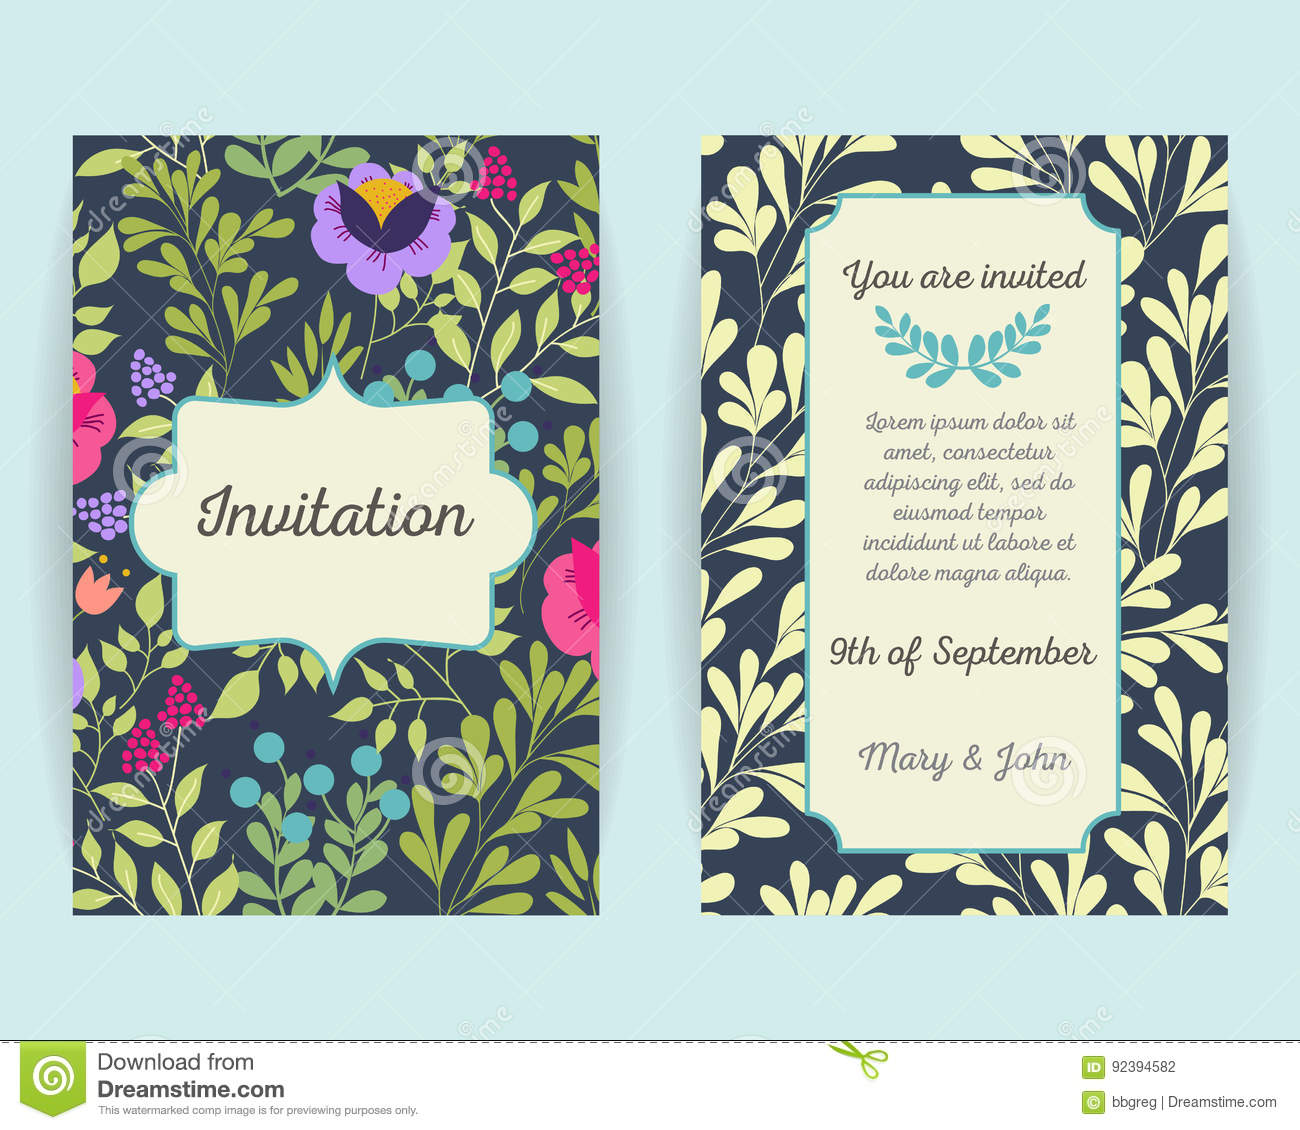 Wedding Invitation Cards With Flowers Berries And Leaves Use For